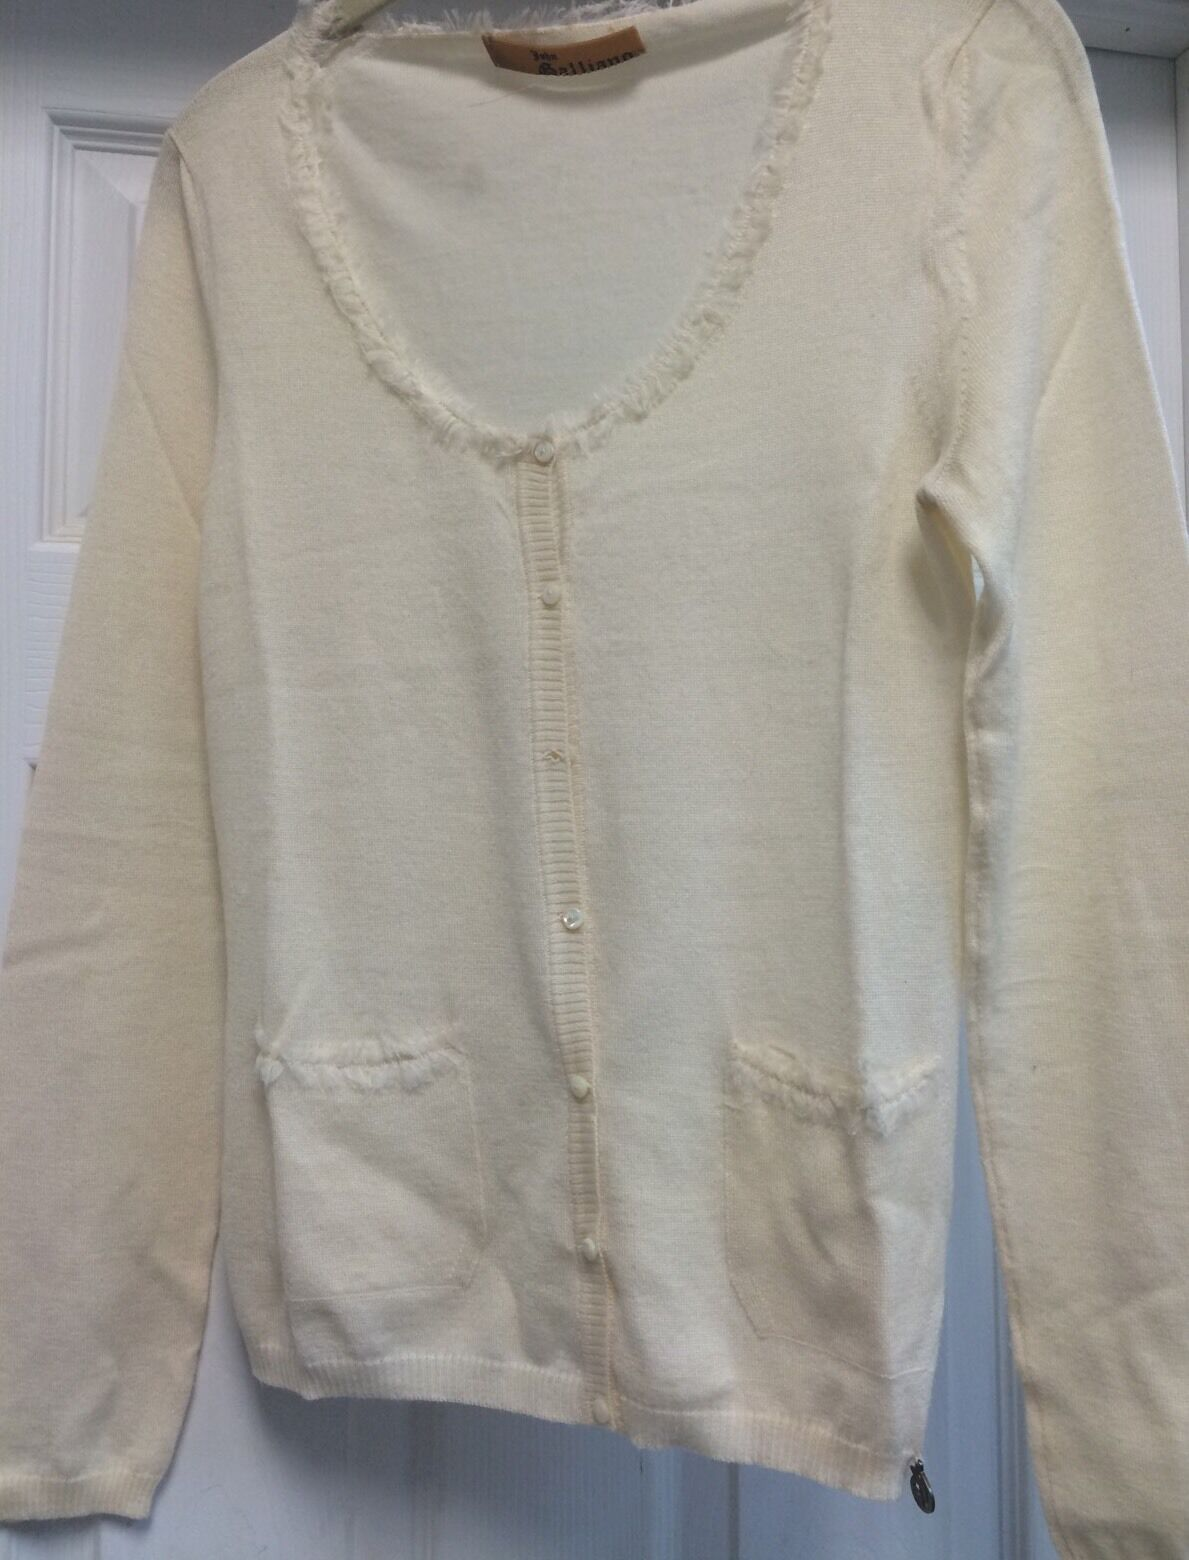 John Galliano Solid Ivory White 100% Fine Wool Cardigan Sz S